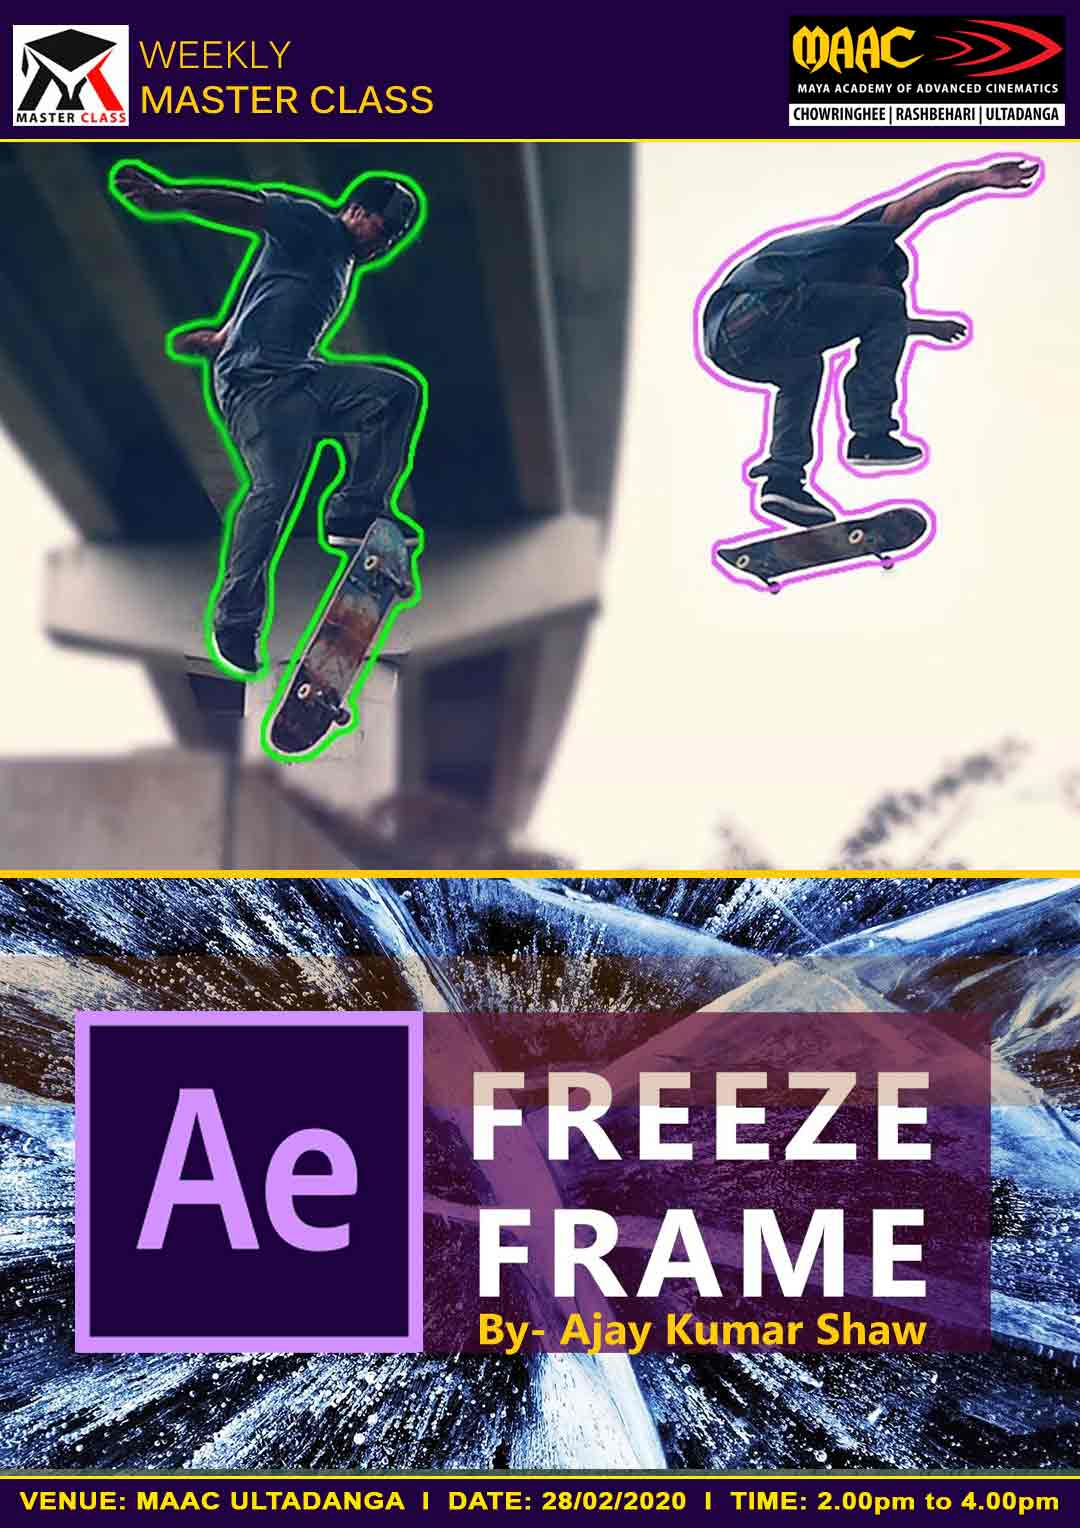 Weekly Master Class on Freeze Frame in After Effect